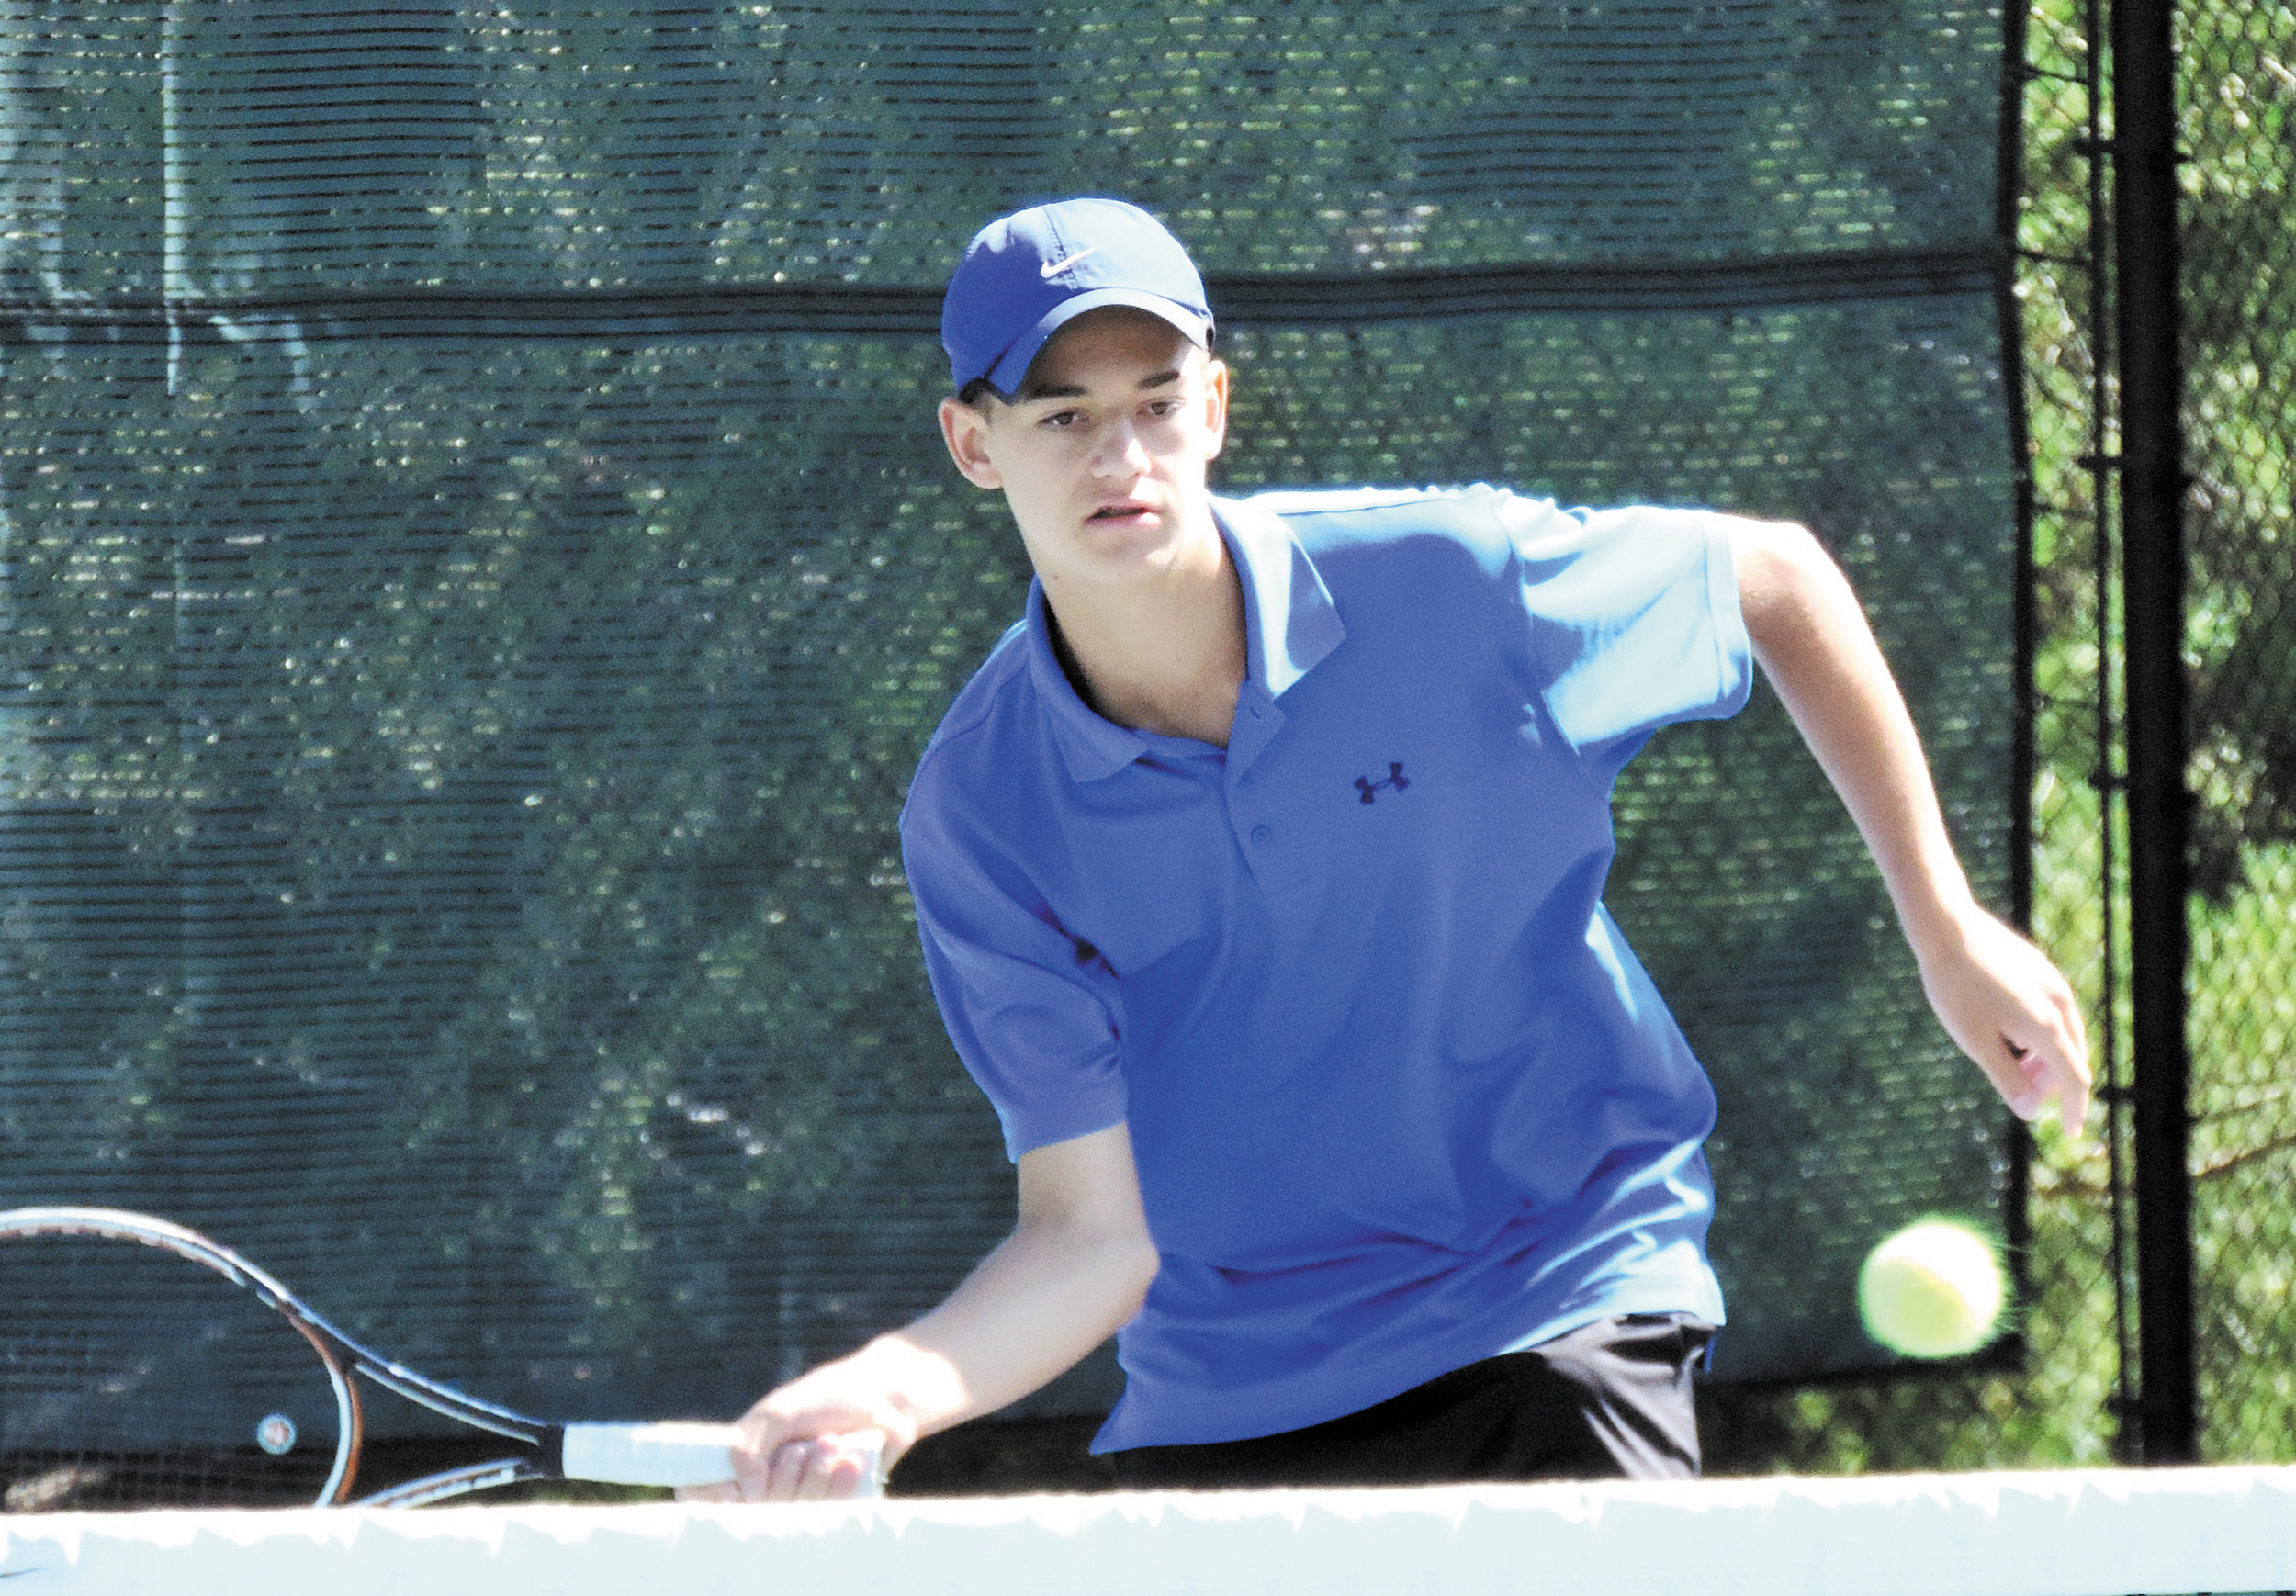 Cherry Creek's Robby Hill is competing to claim one of the three singles positions for the Bruins.